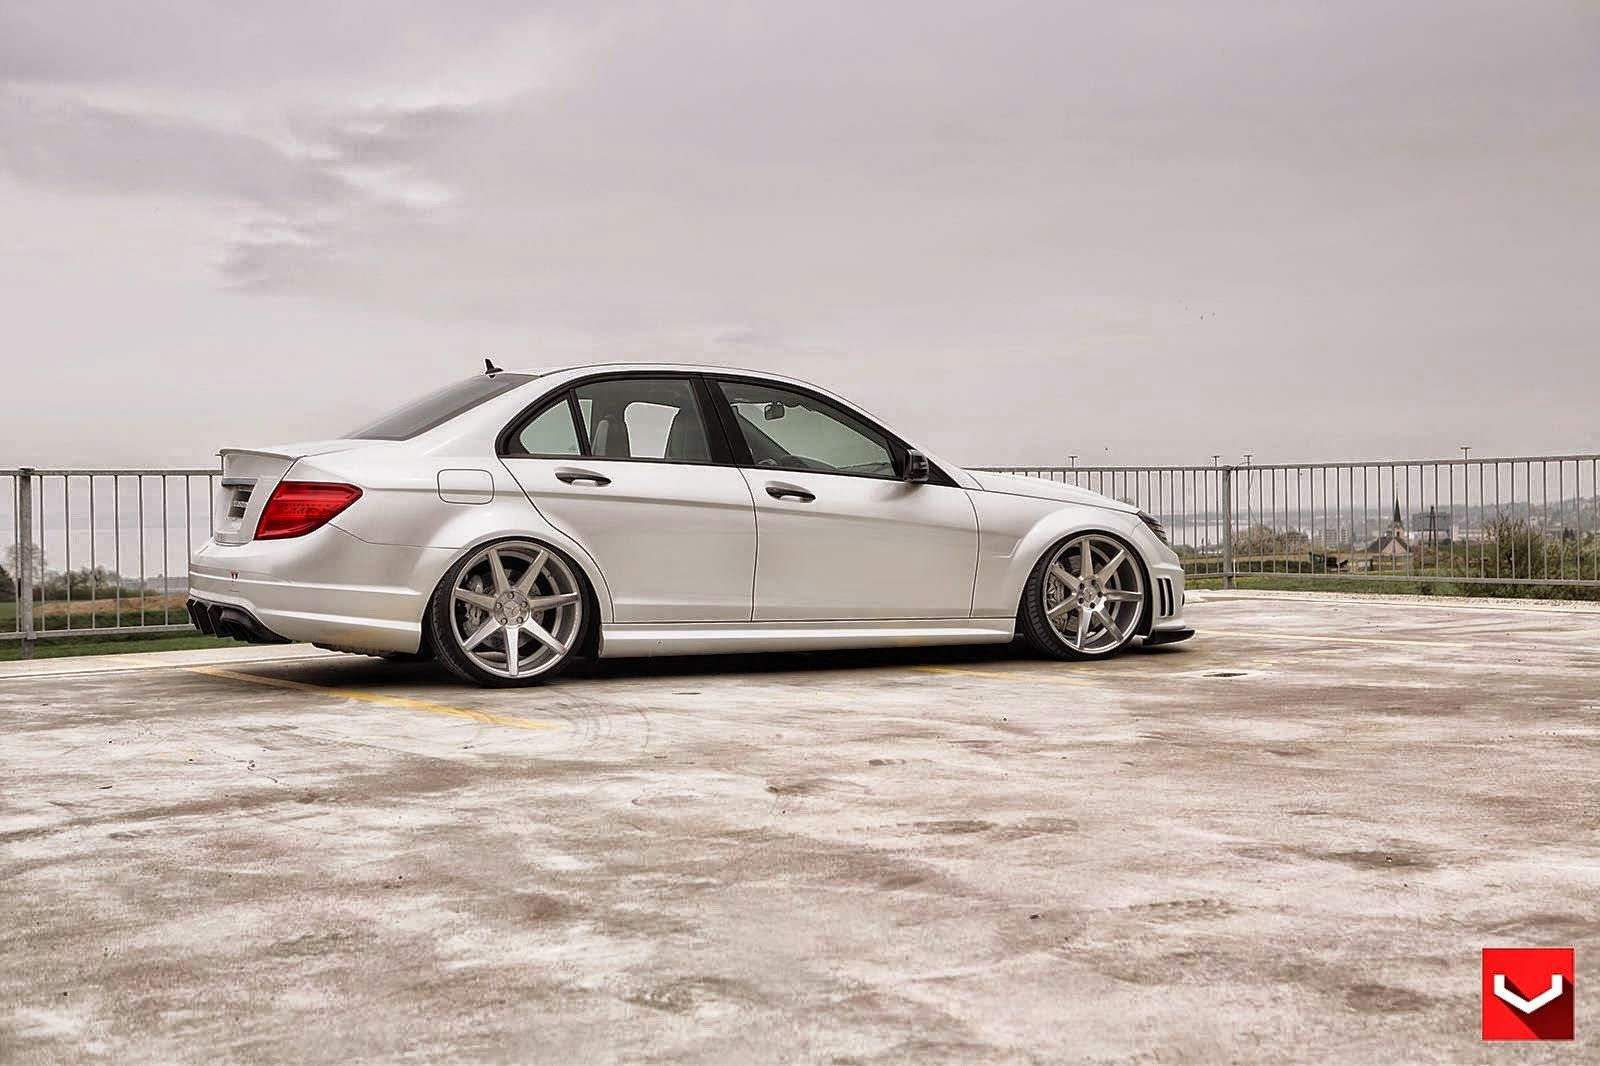 Black bison edition tuning package for the w204 mercedes benz c class - Mercedes Benz C Class On Cv7 By Vossen